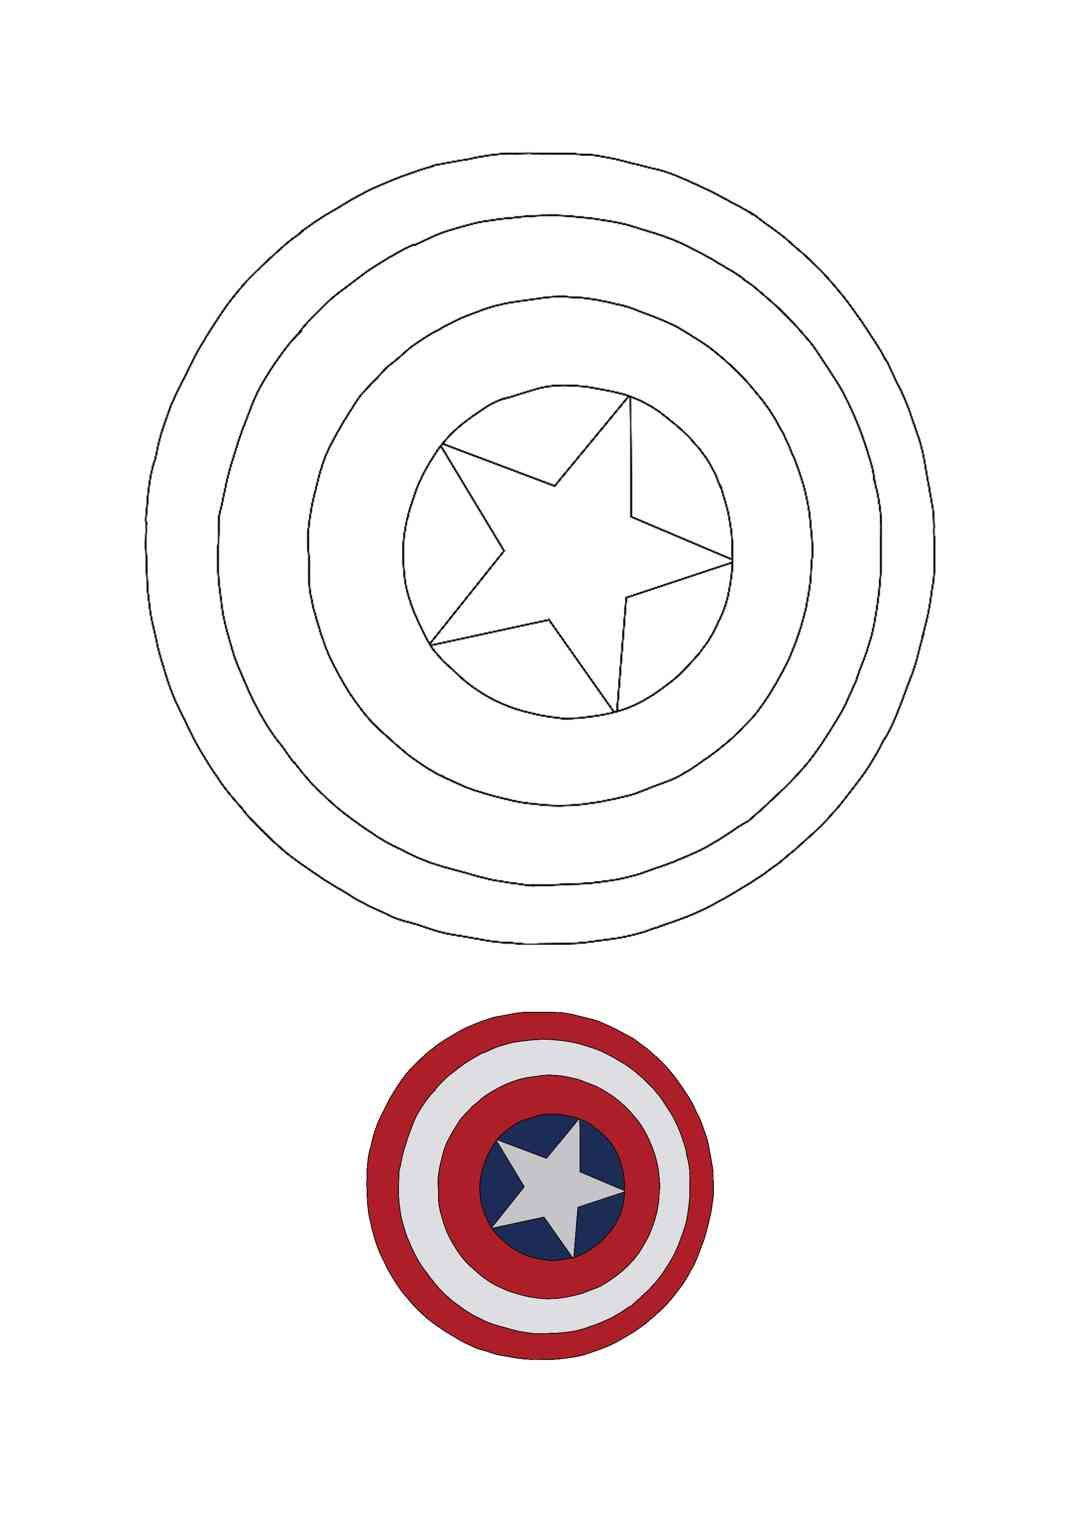 Captain America Shield Coloring Pages Captain America Shield Coloring Pages Captain America